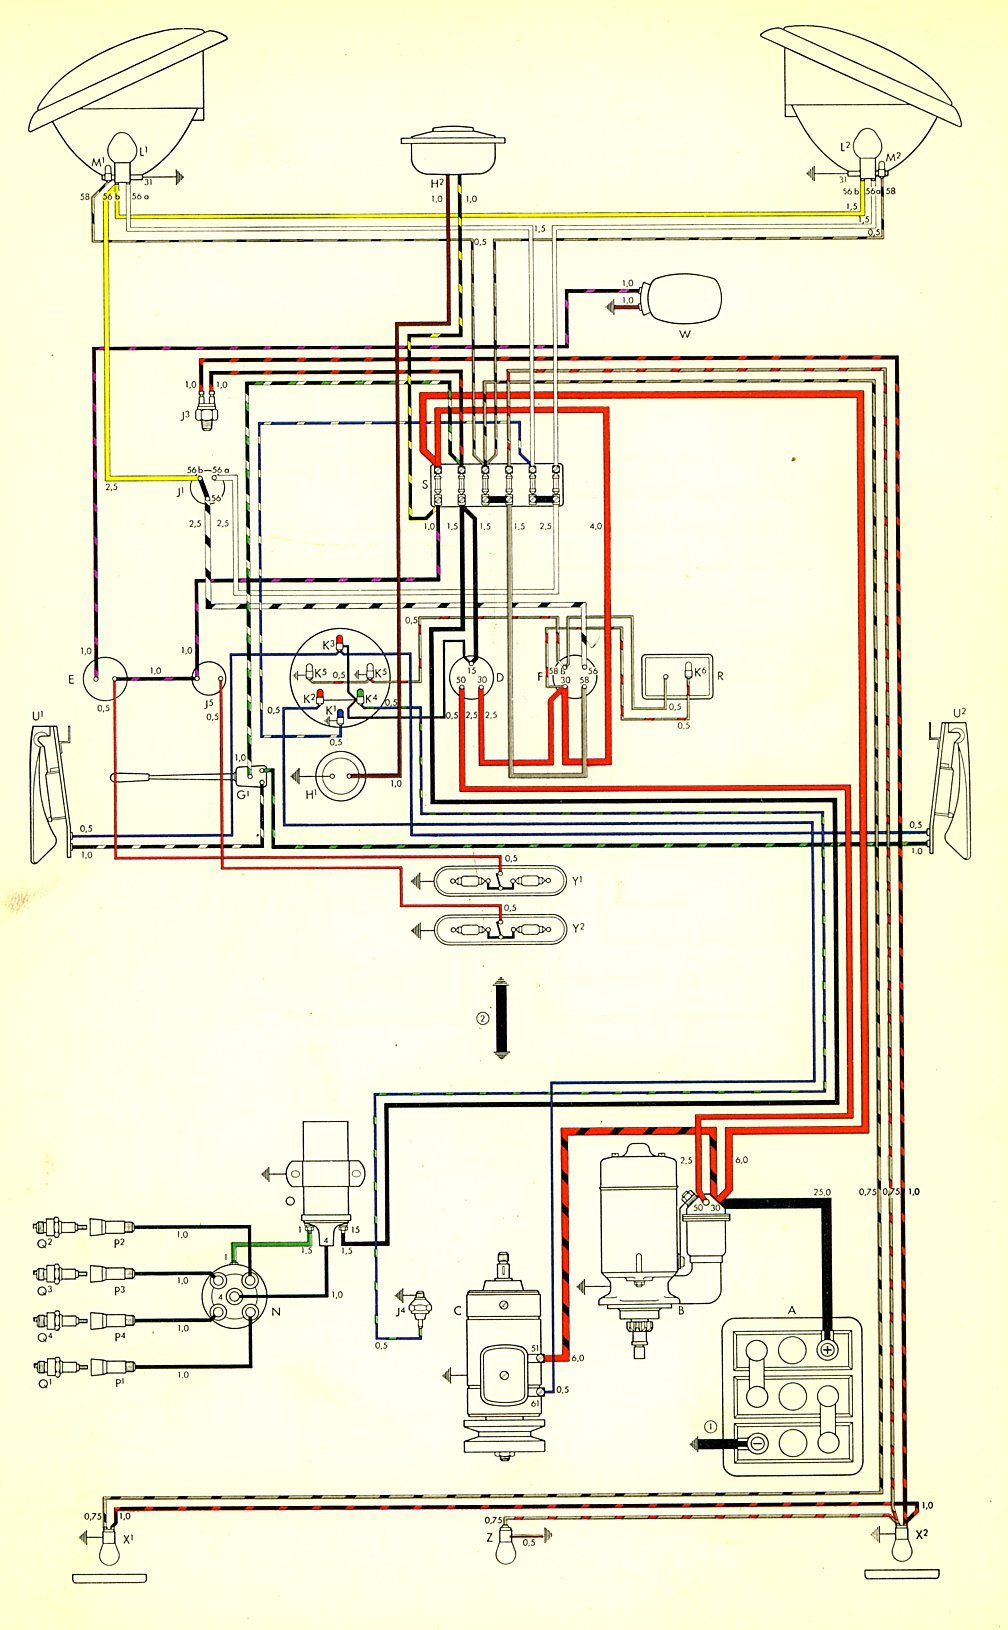 hight resolution of 1968 chrysler newport wiring diagram schematic wiring library rh 94 insidestralsund de 1972 chrysler newport 1966